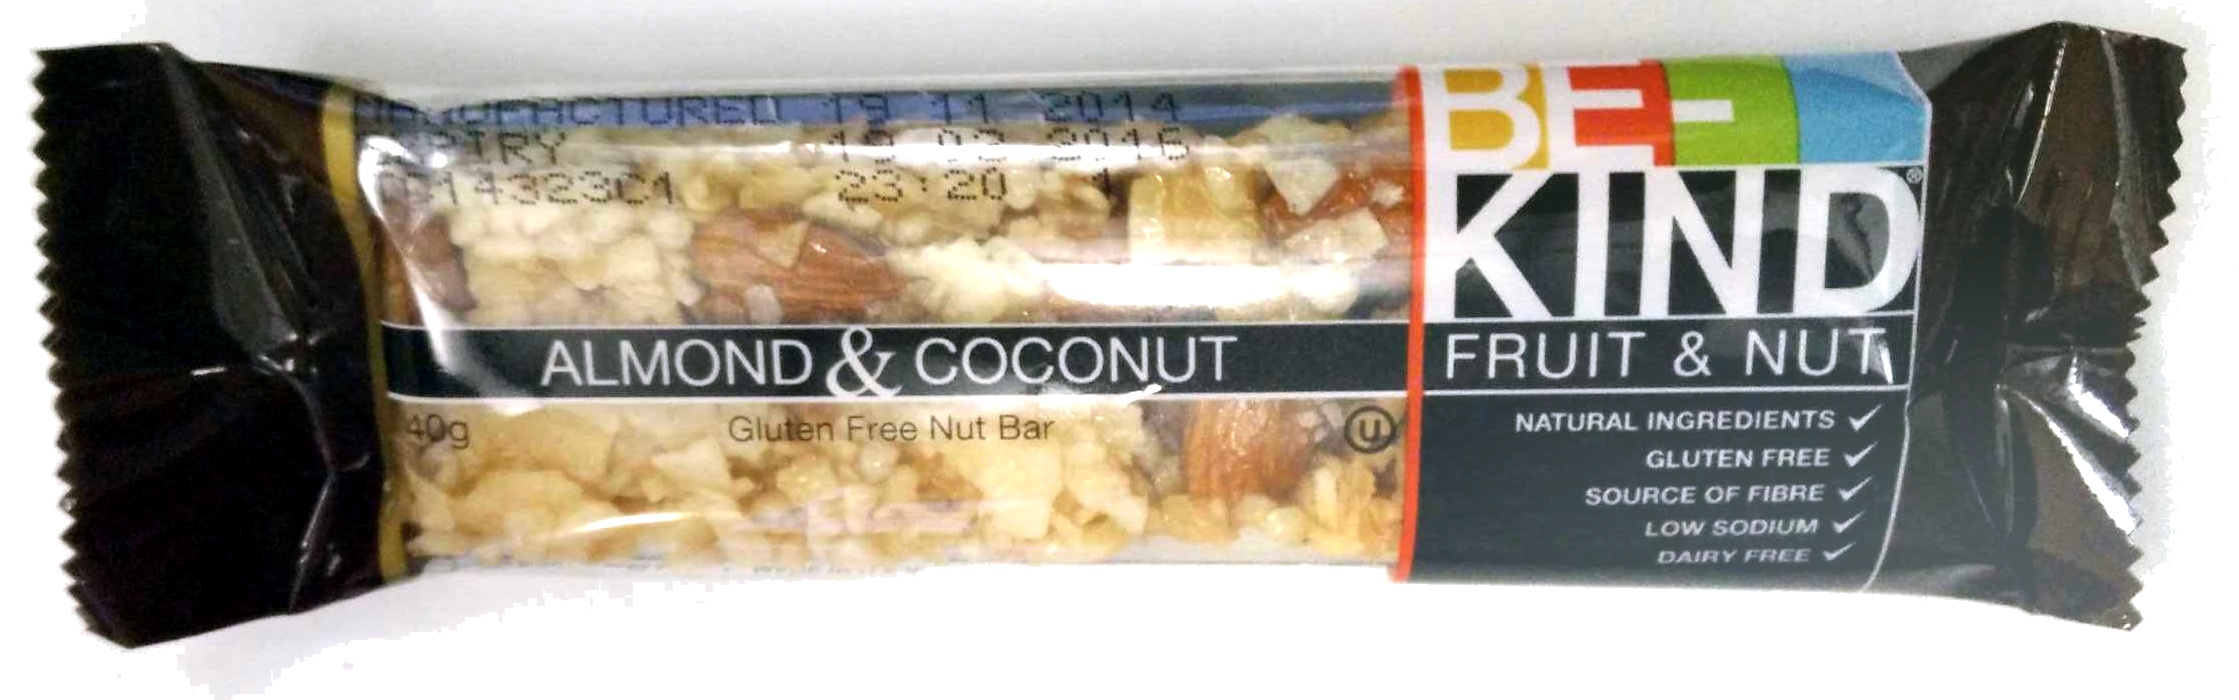 Almond & Coconut gluten Free Nut Bar - Product